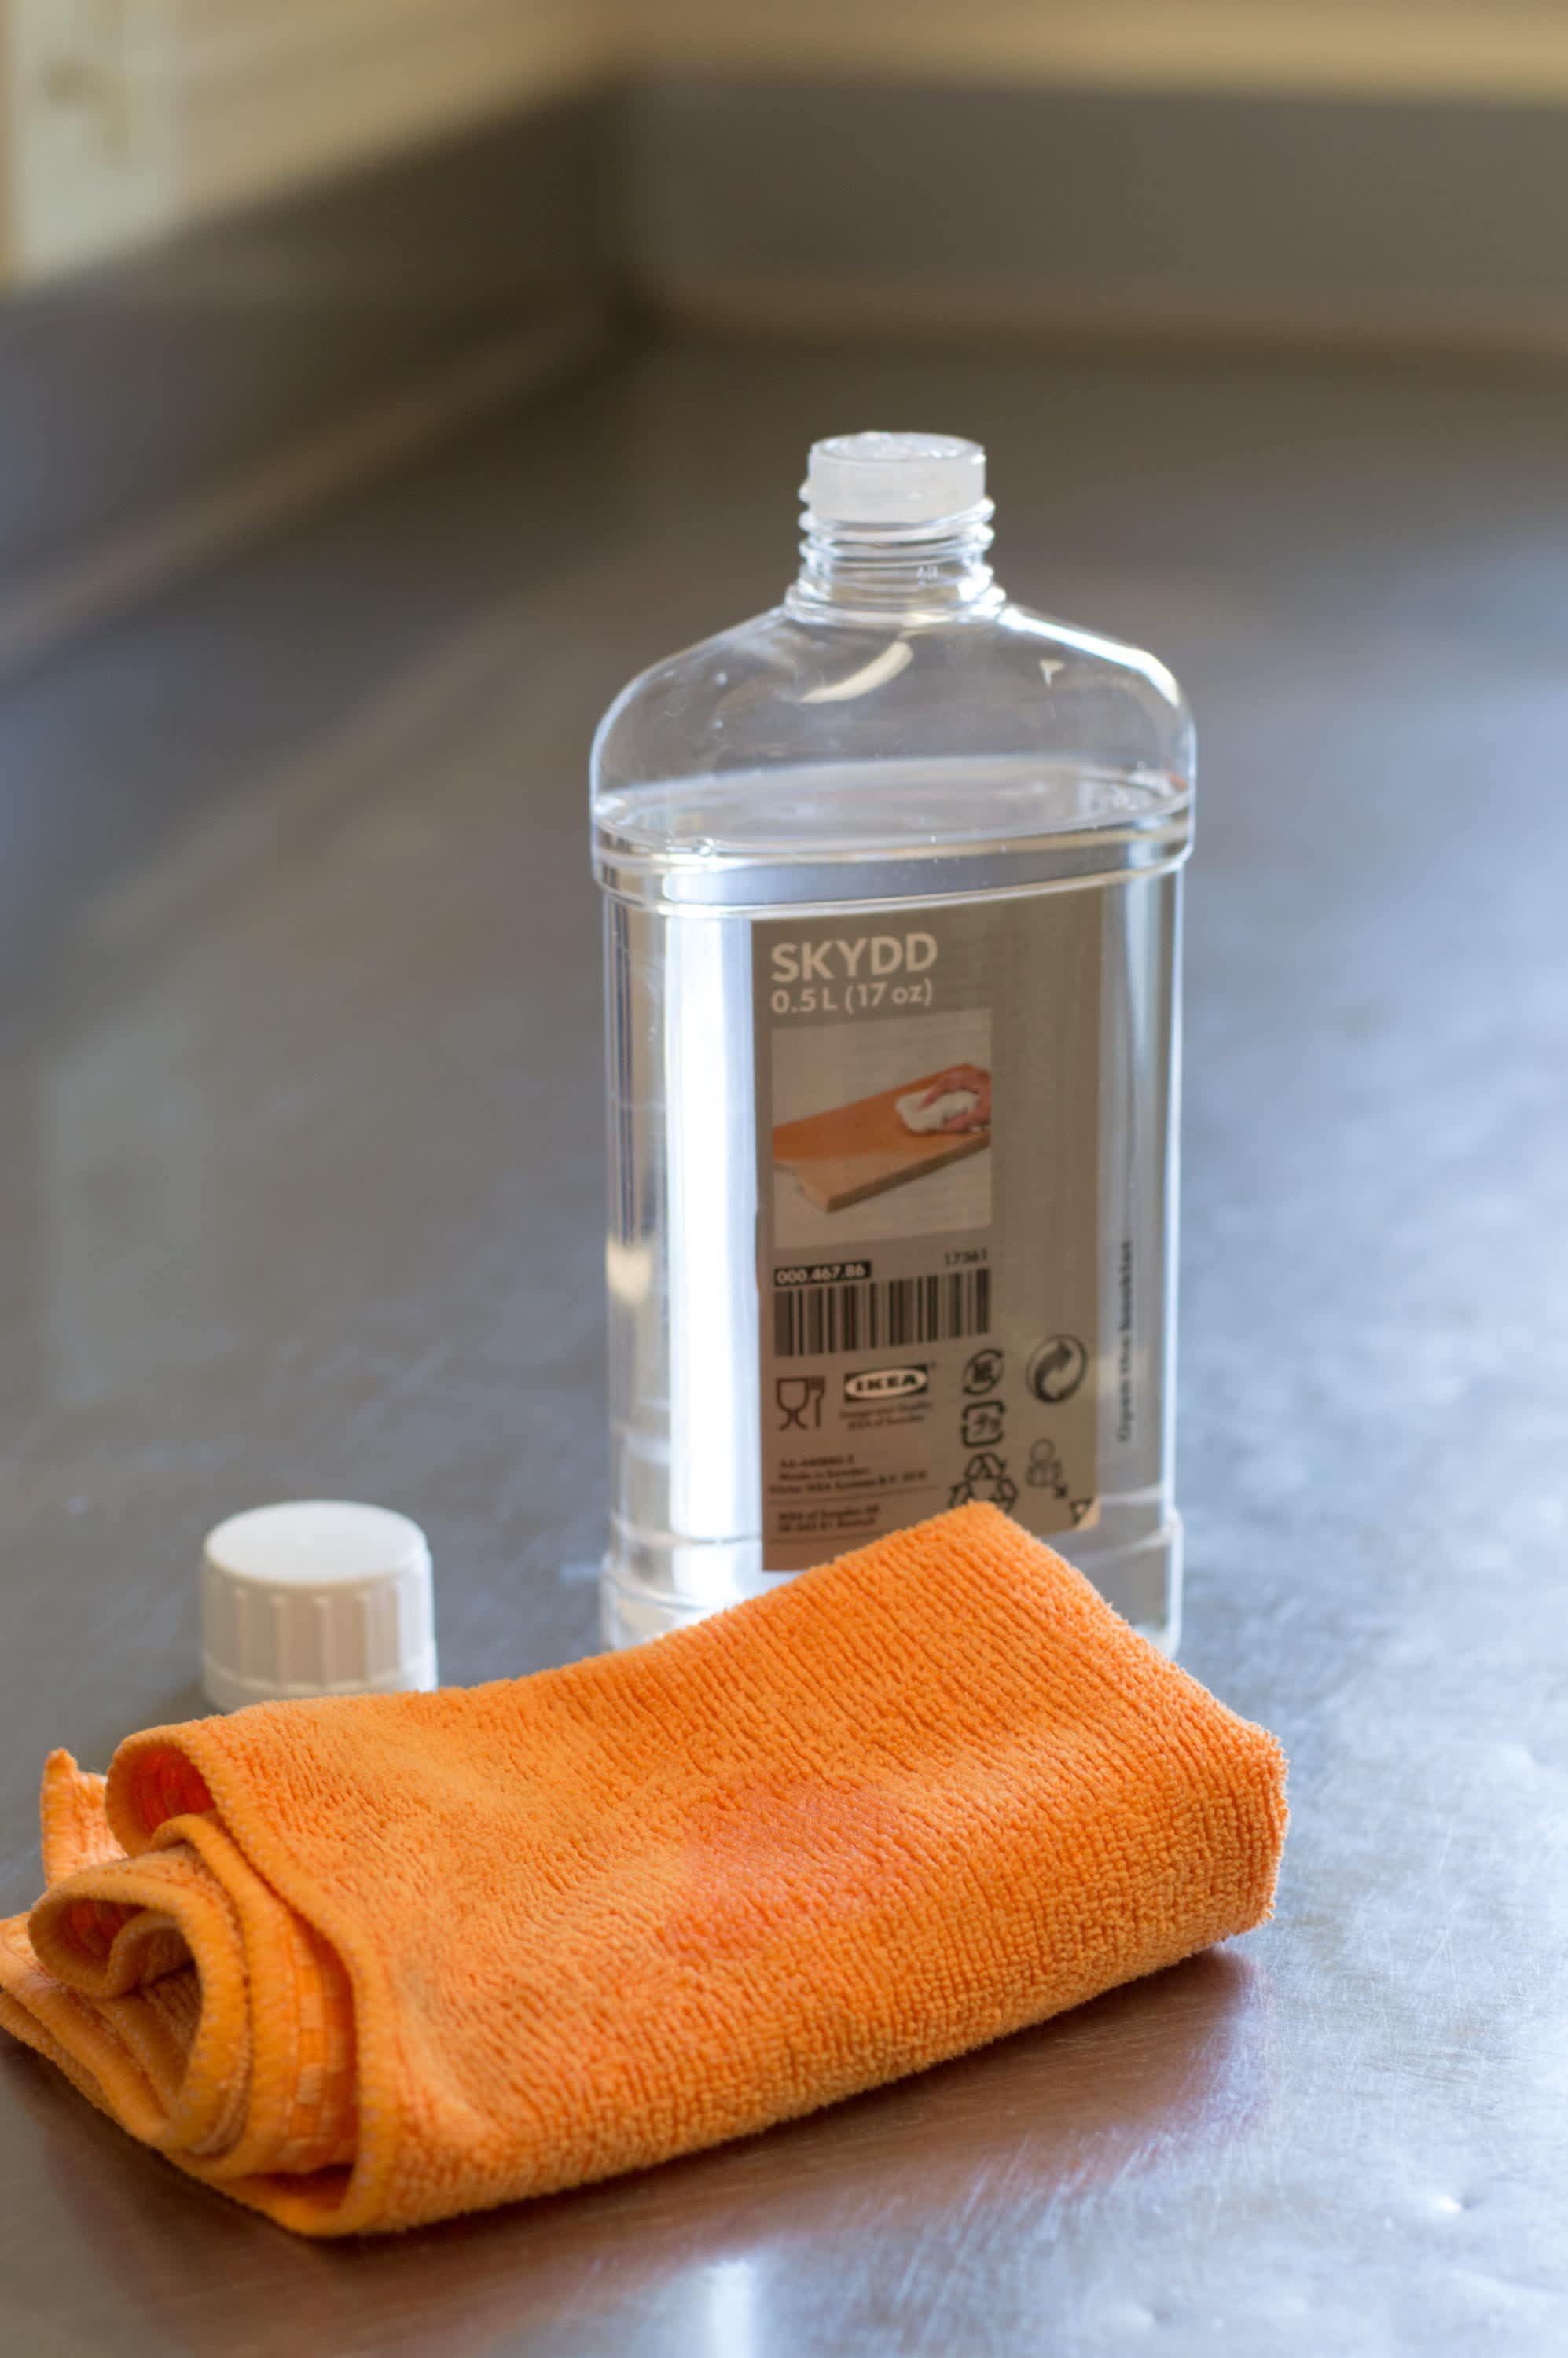 How To Clean Stainless Steel Countertops To a Shiny, Streak-Free Finish: gallery image 6